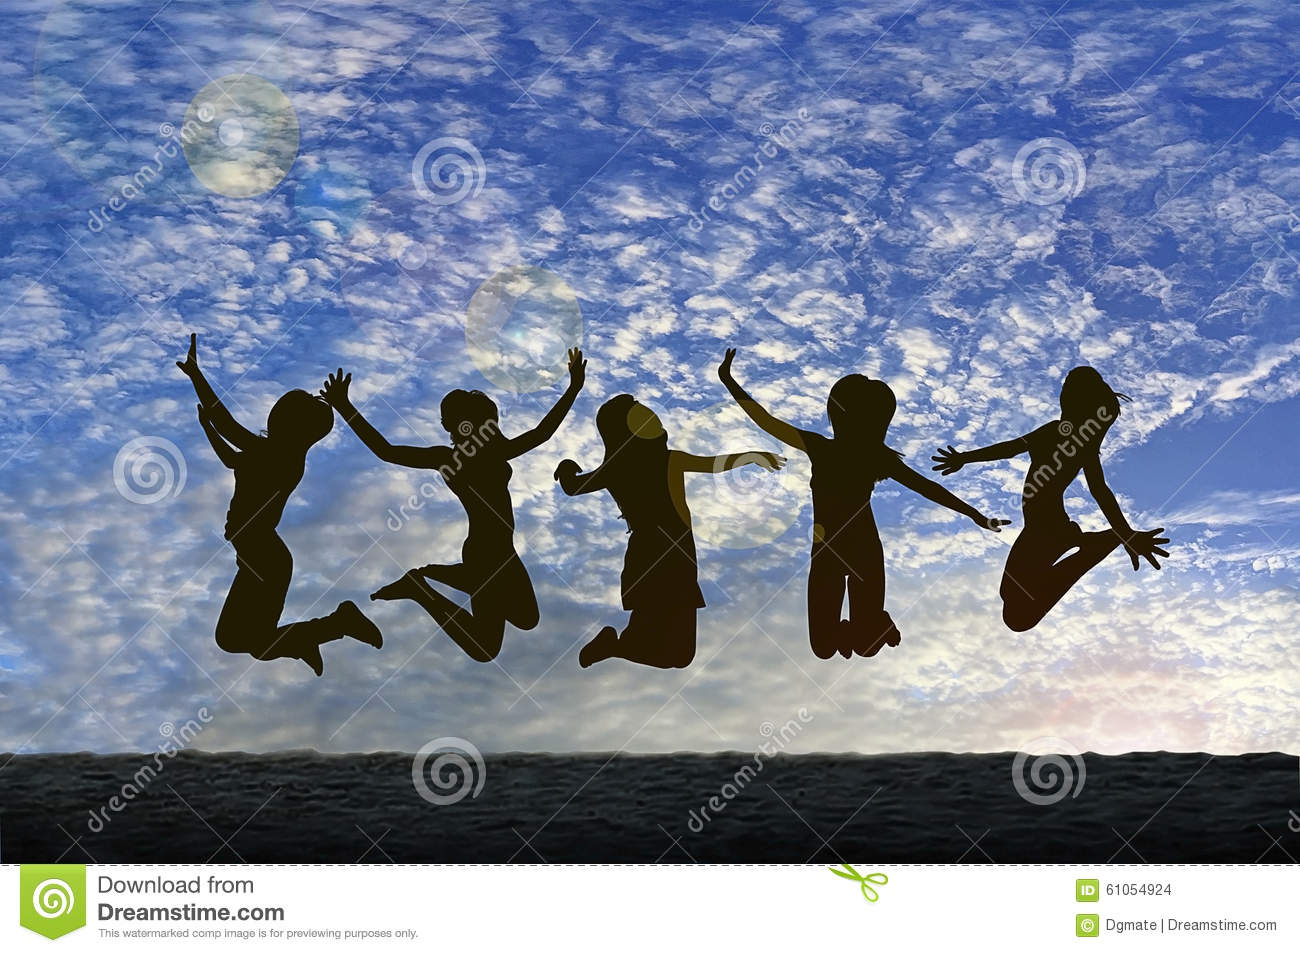 Girls jumping with Joy on the beach silhouetted against a cloudy sky